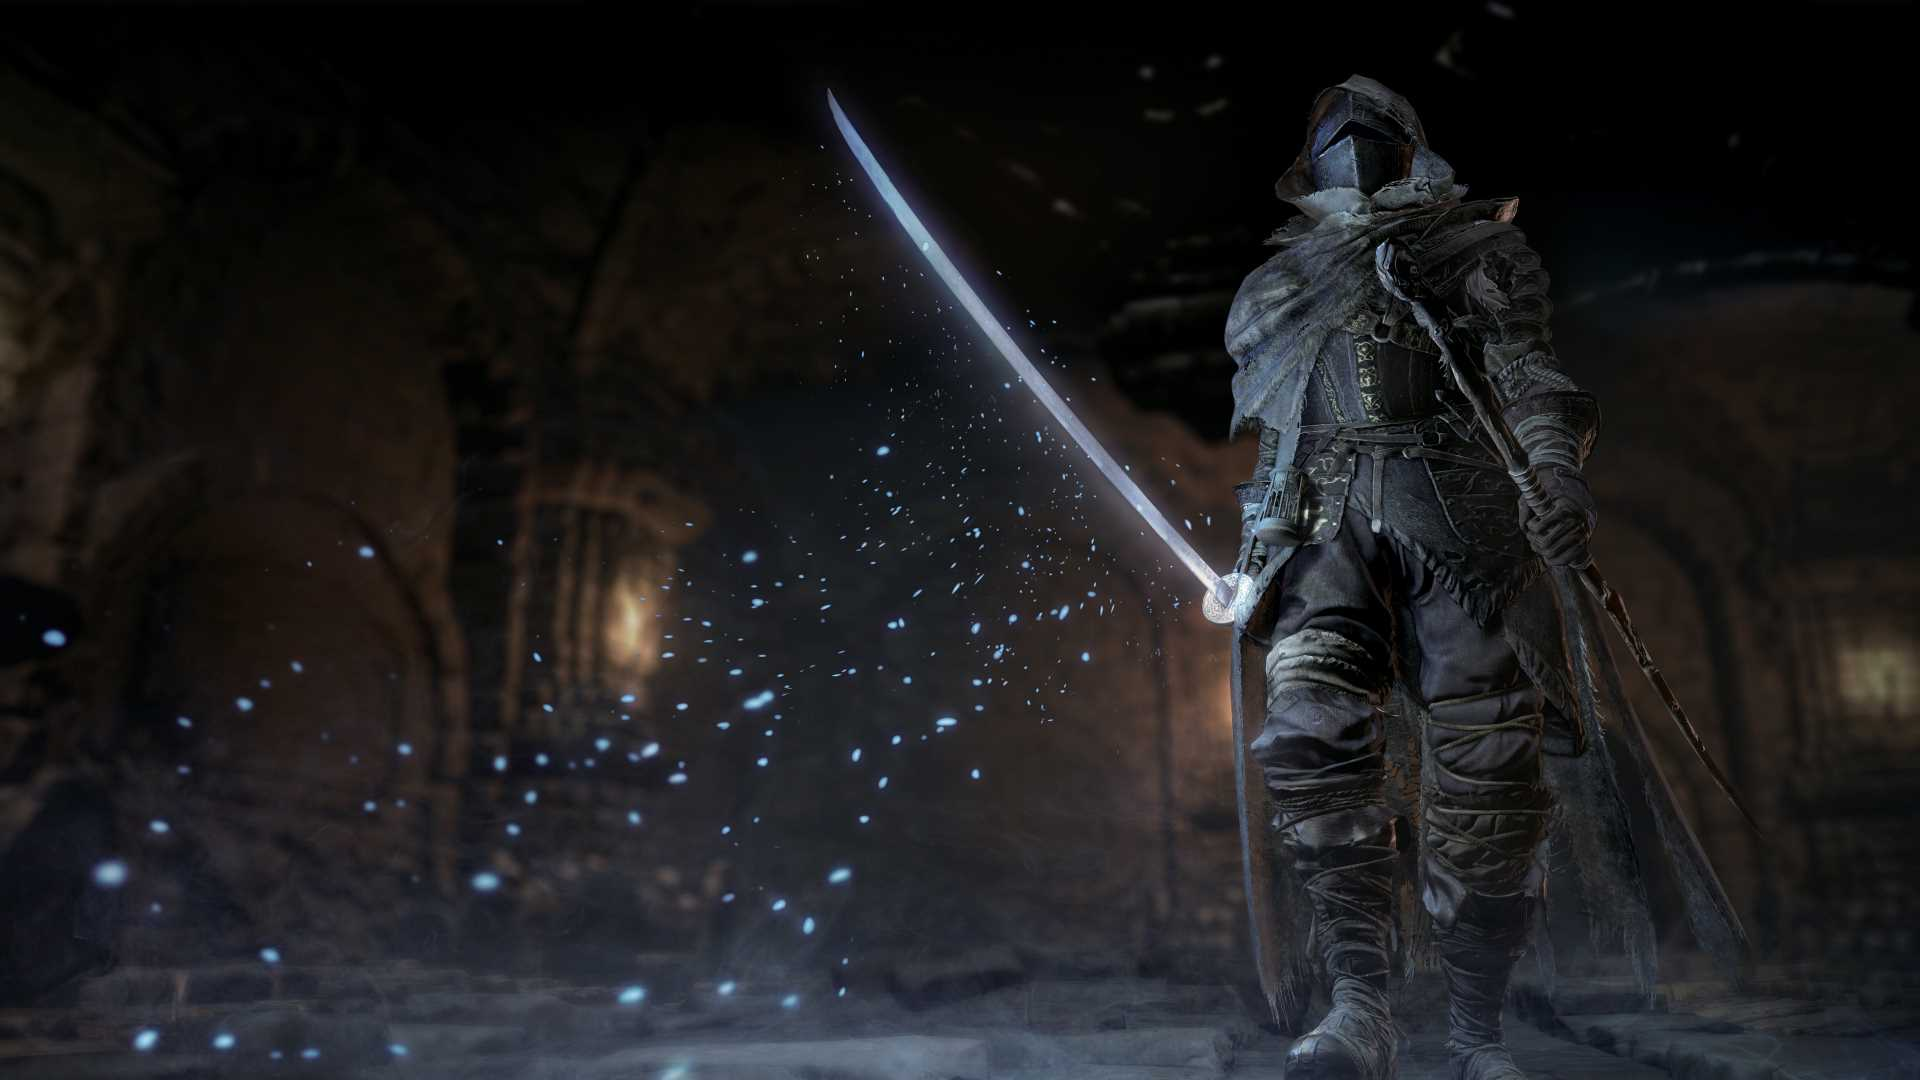 Magic_Snow_Enchant - Dark Souls 3